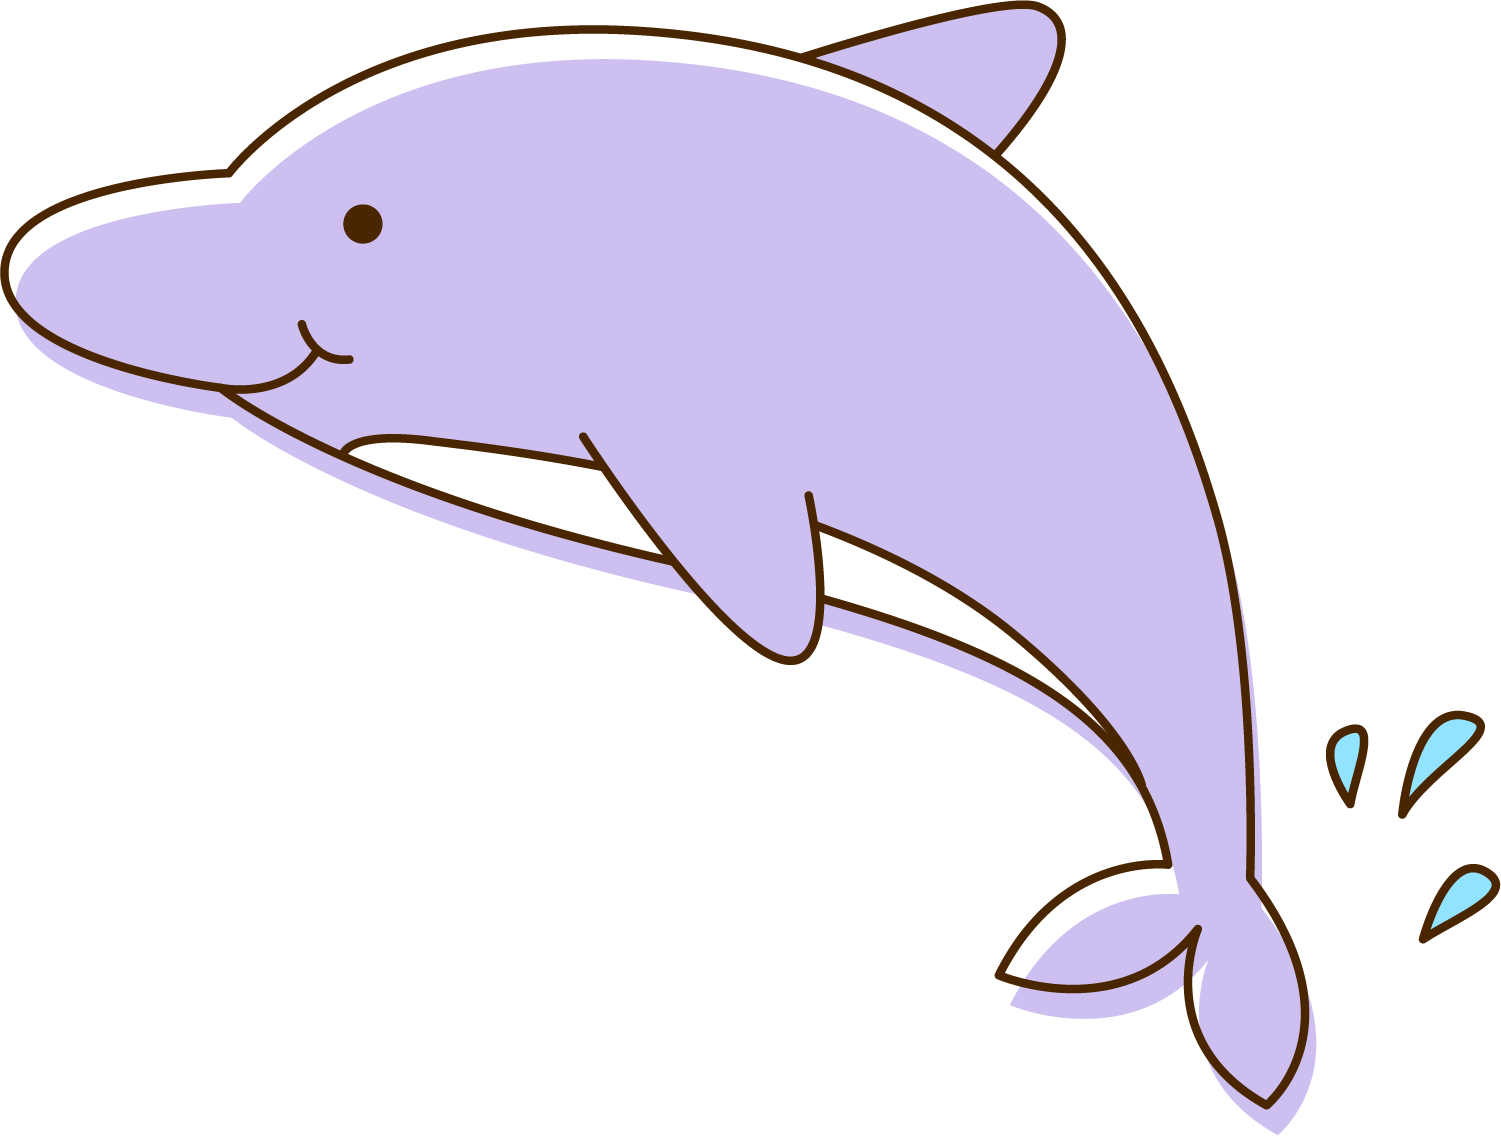 Bottlenose at getdrawings com. Dolphin clipart water clipart